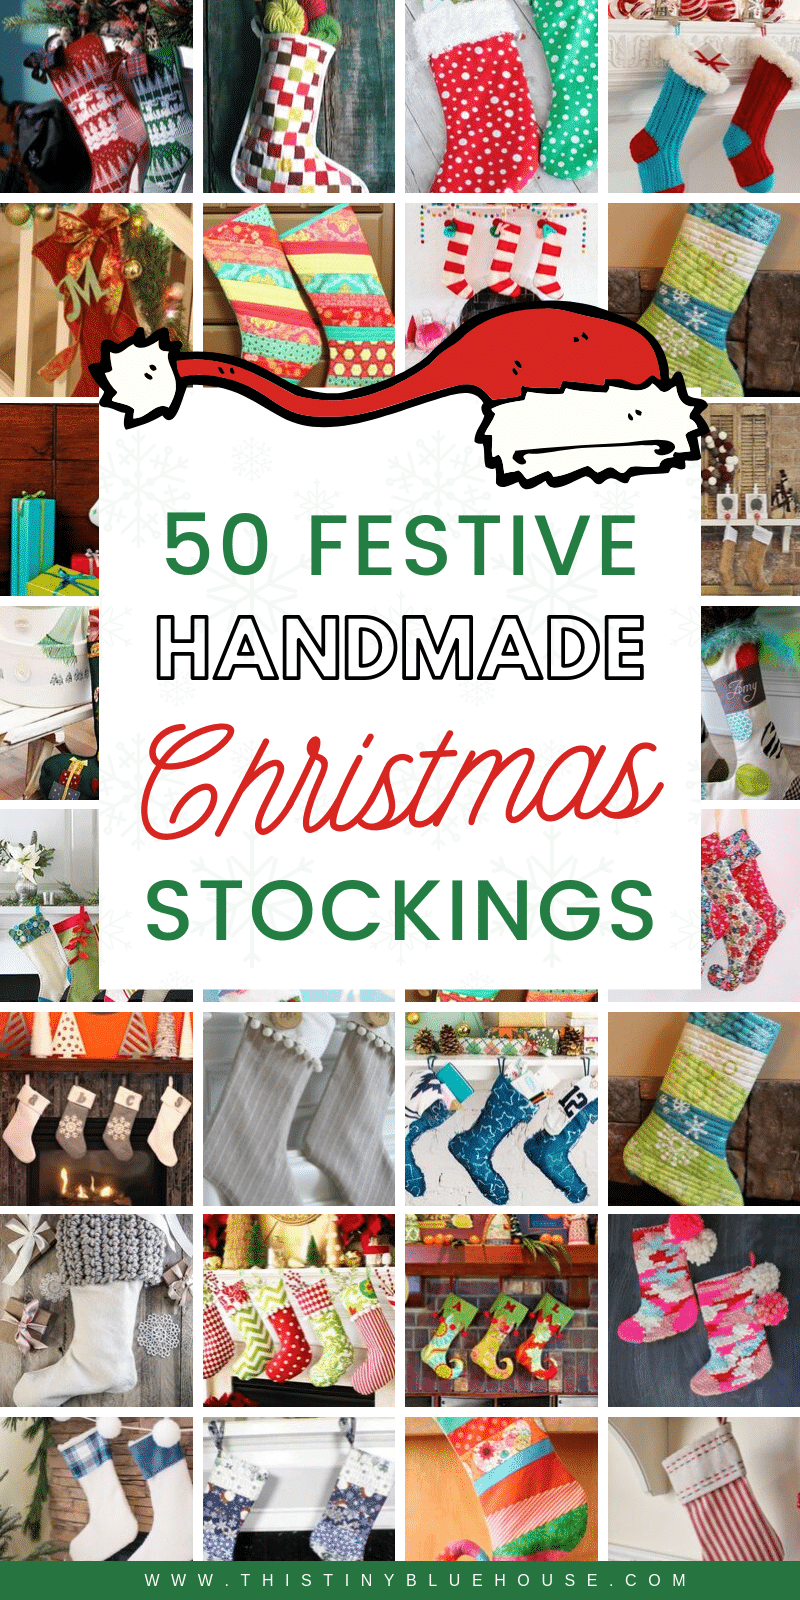 here are 50 of the BEST festive and easy DIY Christmas Stocking tutorials. Add these DIY stockings to your holiday traditions this year. #ChristmasStockings #ChristmasStockingsDIY #ChristmasStockingsPatterns #CHristmasStockingsIdeas #ChristmasStockingsHomemade #ChristmasStockingsPersonalized #DIYChristmasStockings